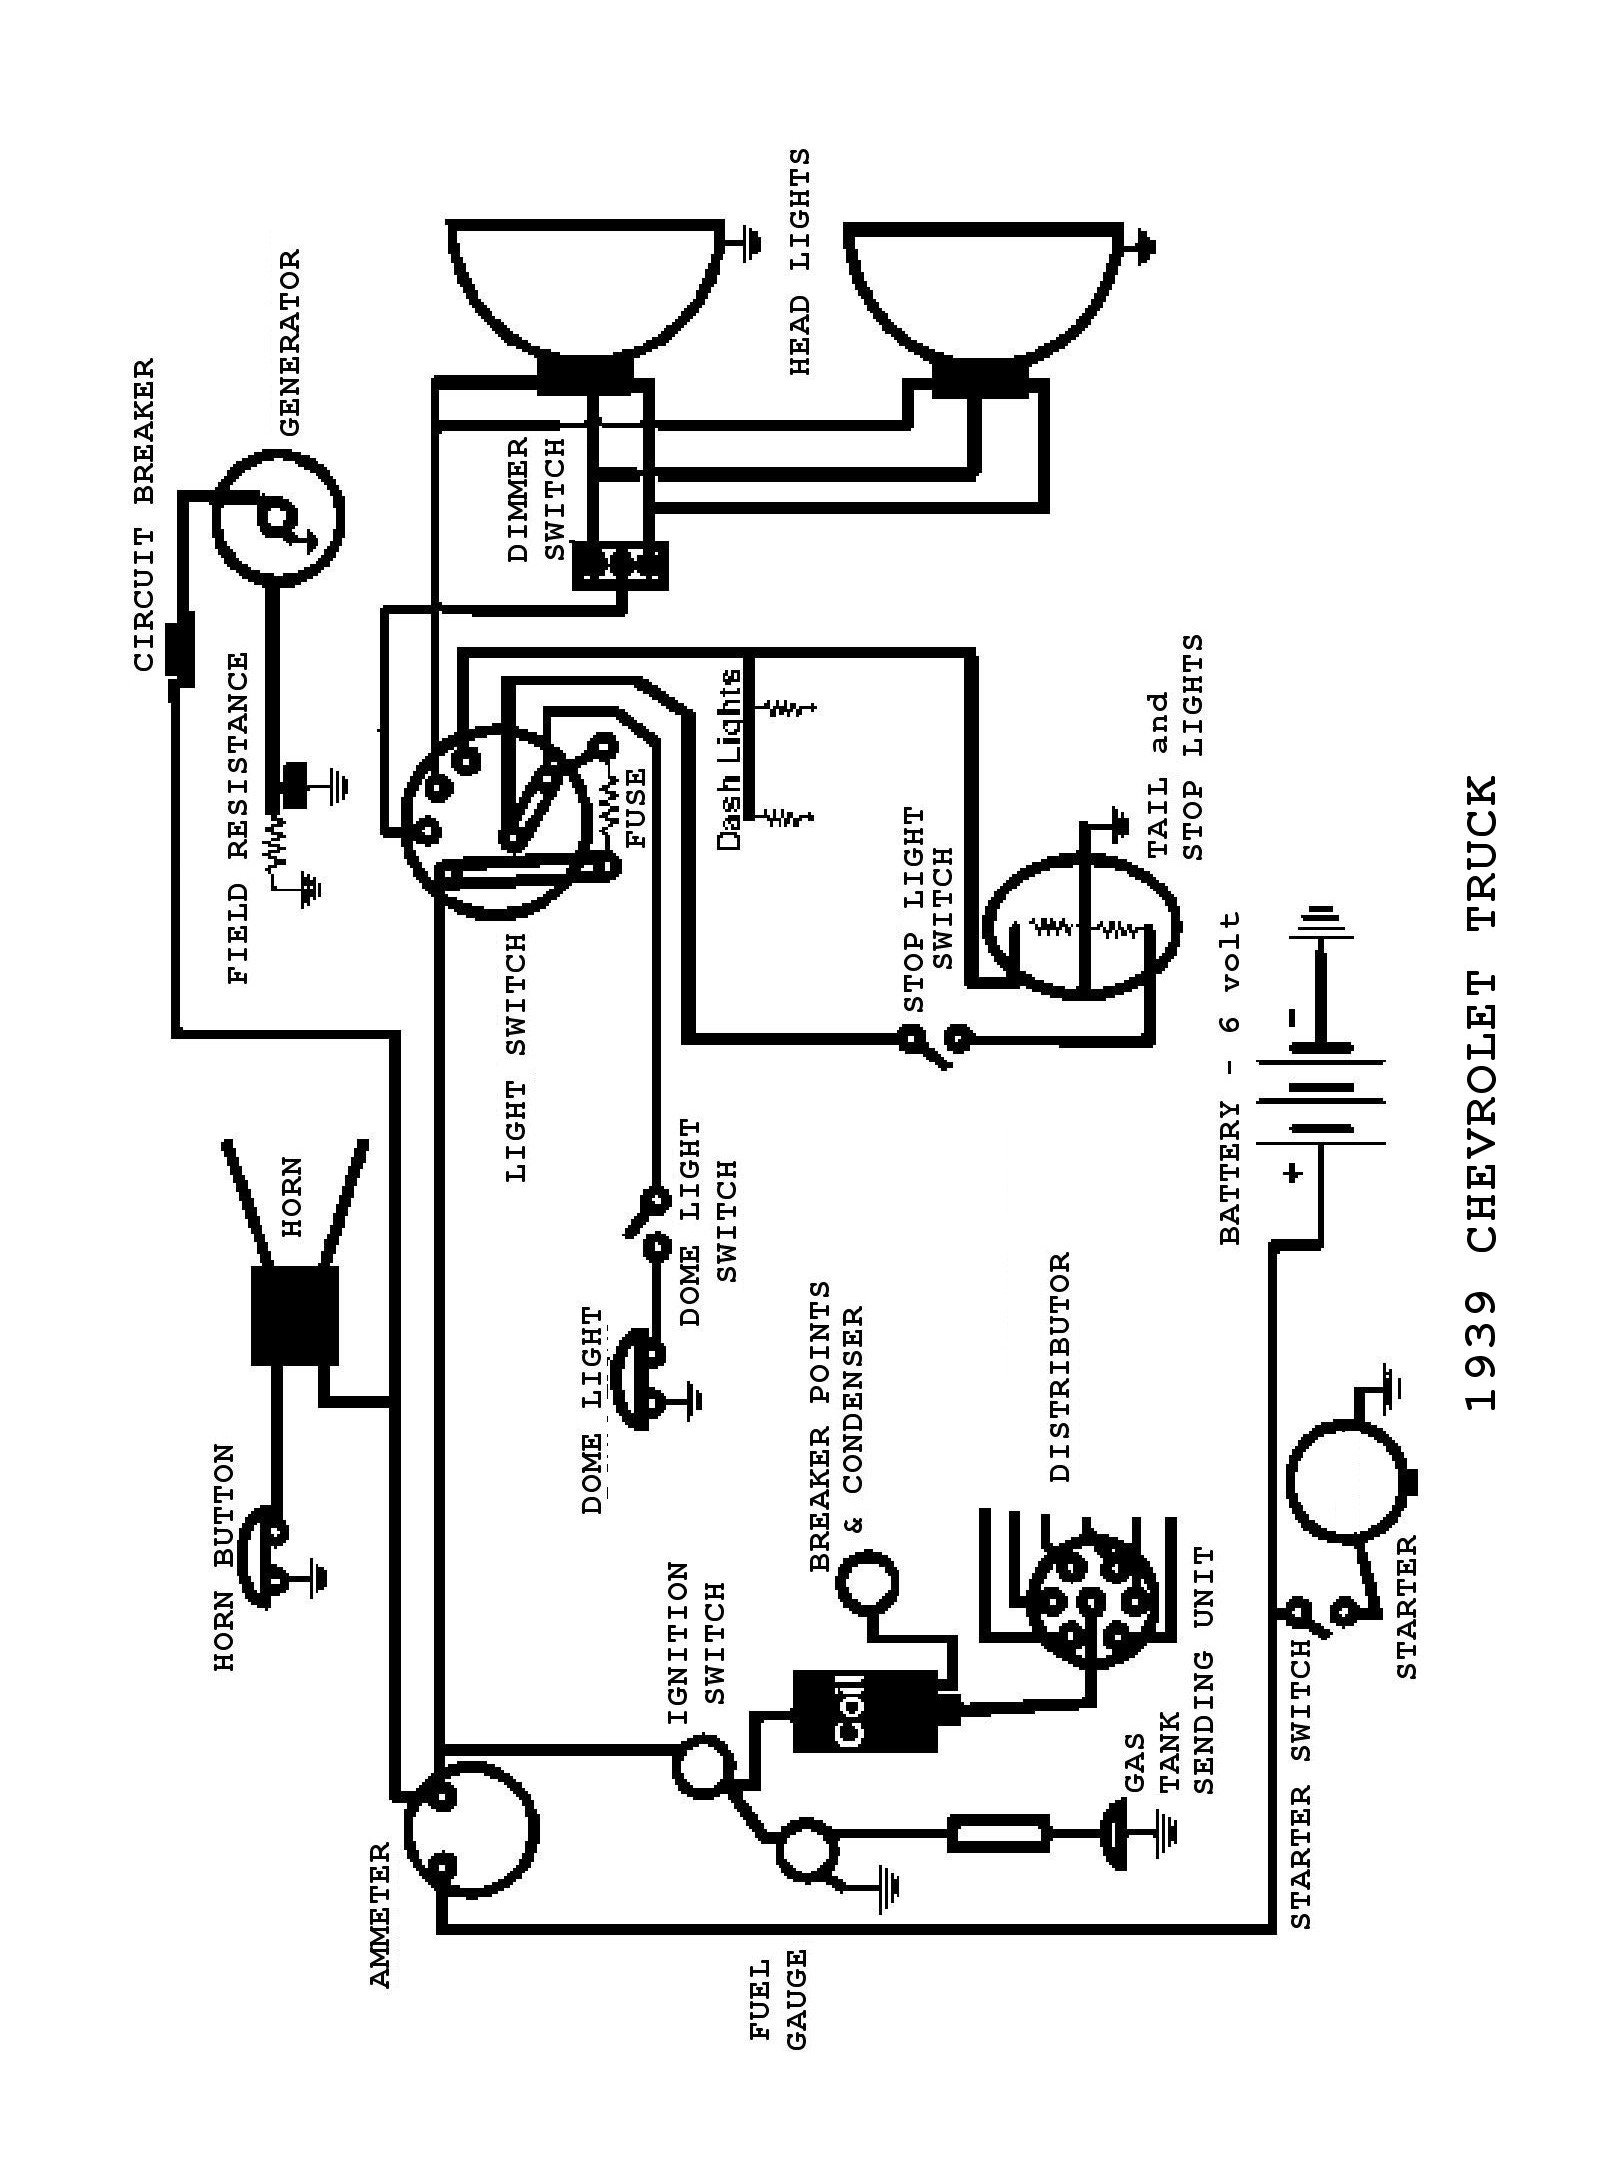 1991 International Wiring Diagram | Wiring Liry on 2006 international 4300 truck diagram, 4900 international truck headlights, 4900 international truck parts, international 4700 fuse panel diagram, international 4700 dt466e diagram, 2001 4700 international engine diagram, 4900 international box truck, 2005 international 4200 wire diagram, 1996 international 444e engine diagram, international 4300 truck parts diagram, 1996 4900 international battery diagram, international truck ignition wires diagram, international 4900 dt466e starter wire diagram, international 4900 electrical diagram, 1996 international 2674 instrument diagram, 4900 international truck service manual,